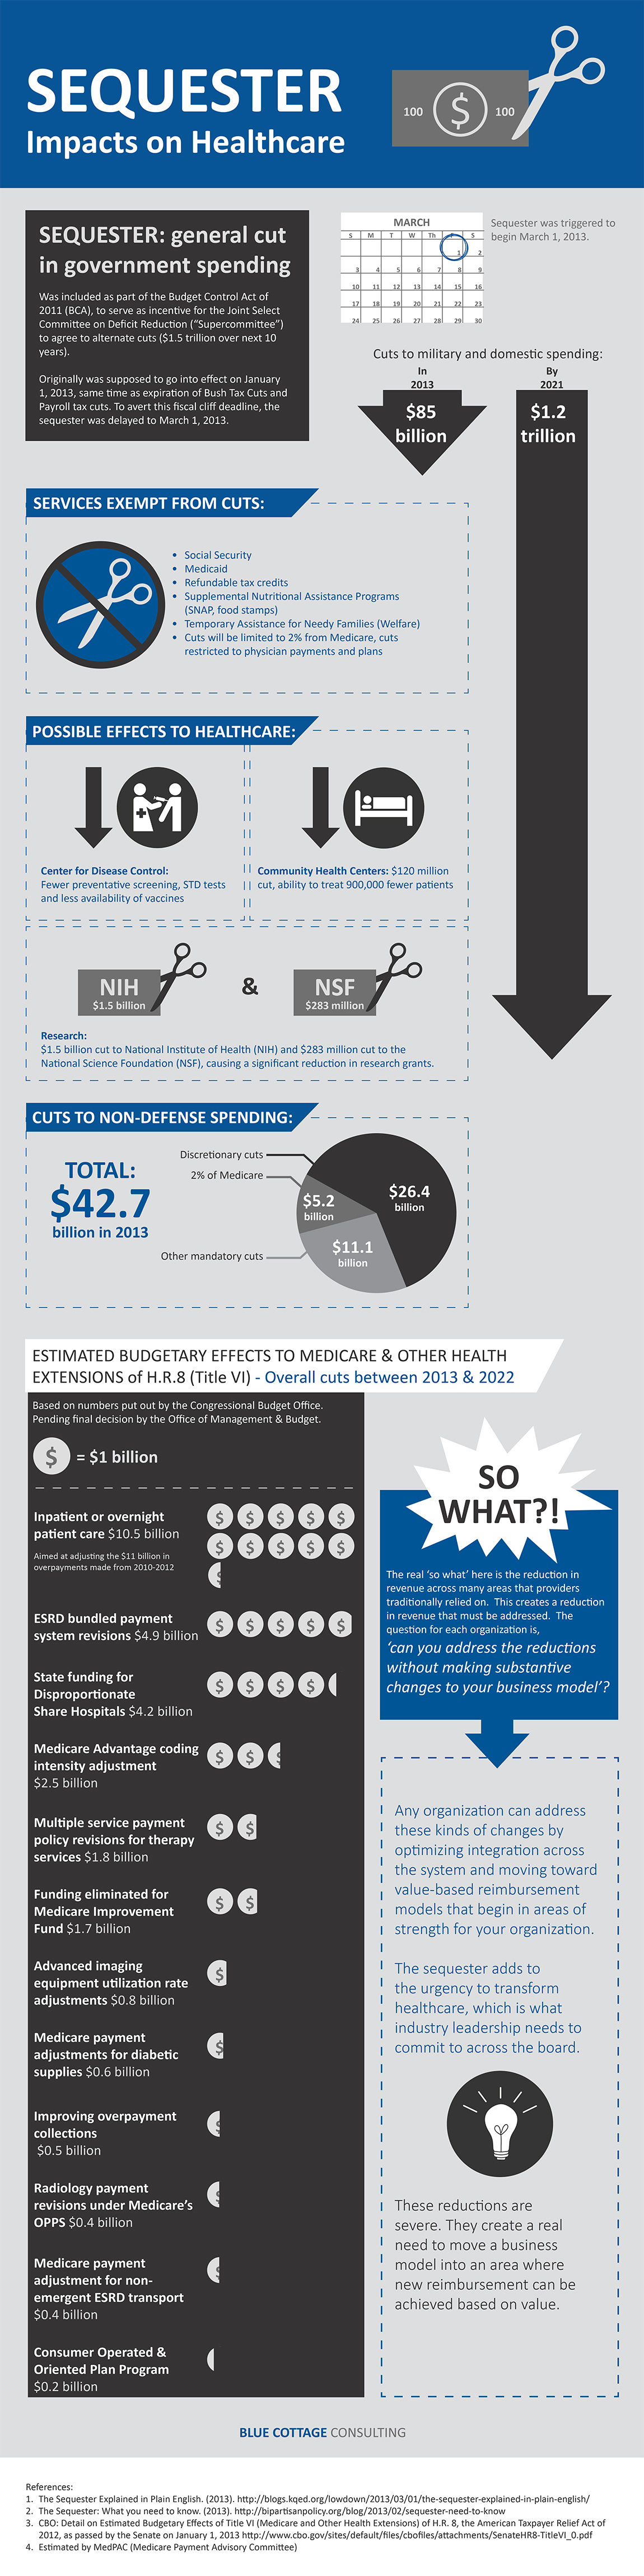 Sequestor: Impacts on Healthcare